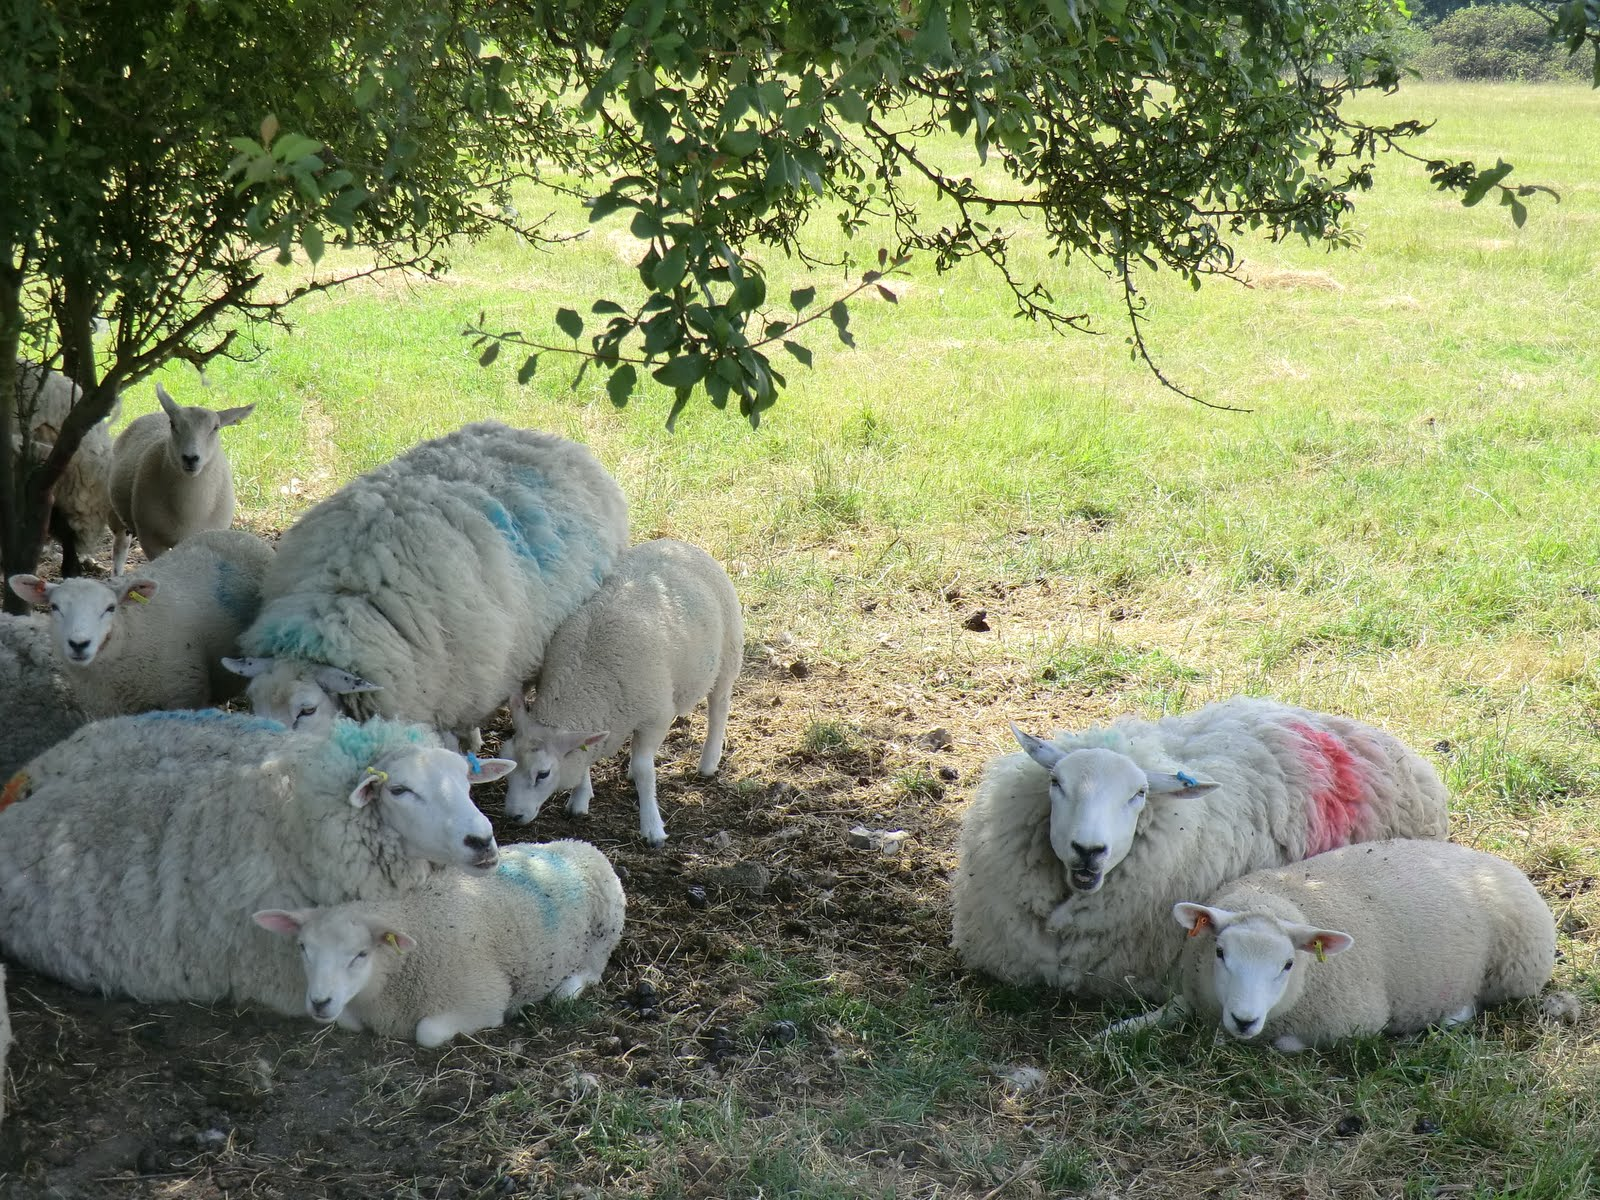 CIMG2340 Sleepy sheep by Whitehall Lane